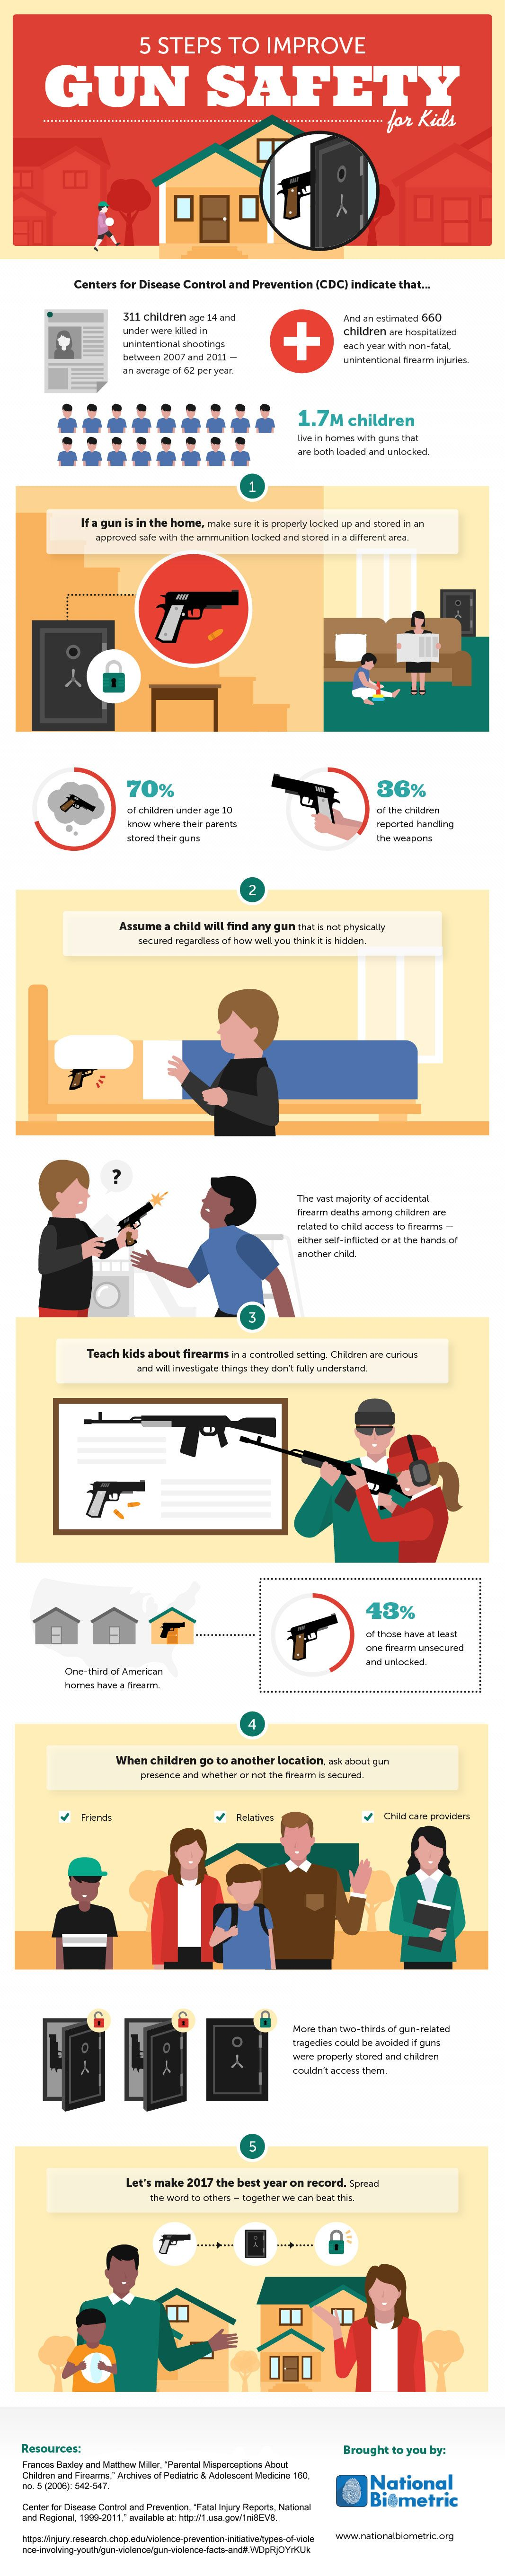 5 Steps To Improve Gun Safety For Kids